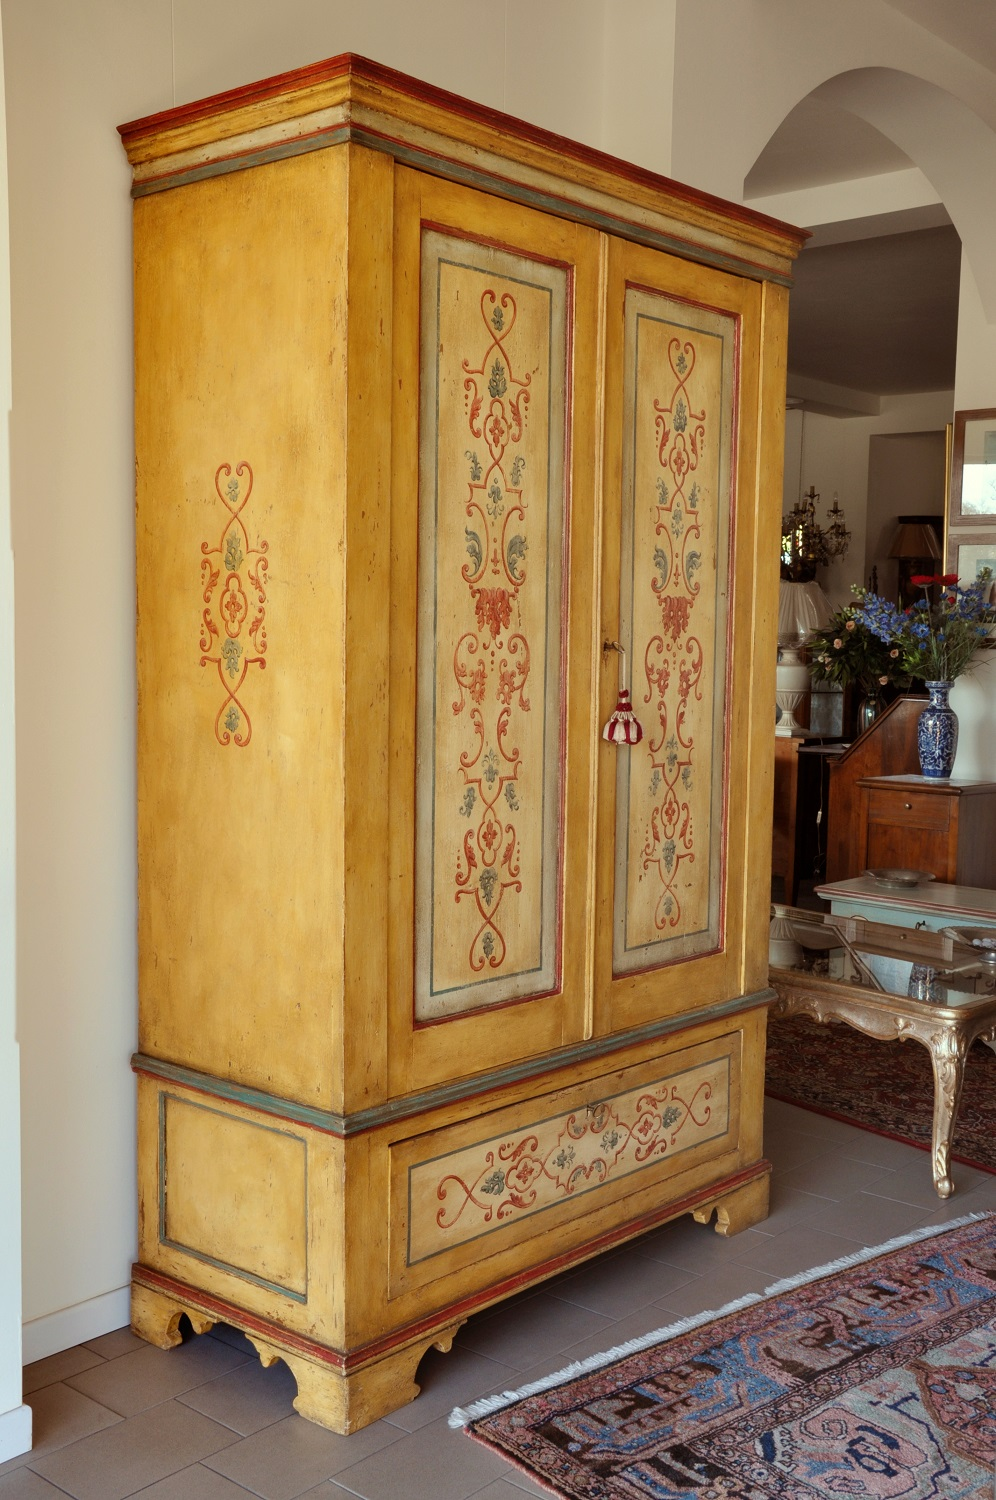 Armadio 4 Ante Decorato A Mano.Double Leaf Door Hand Decorated 600 Baroque Tuscan Cupboard With